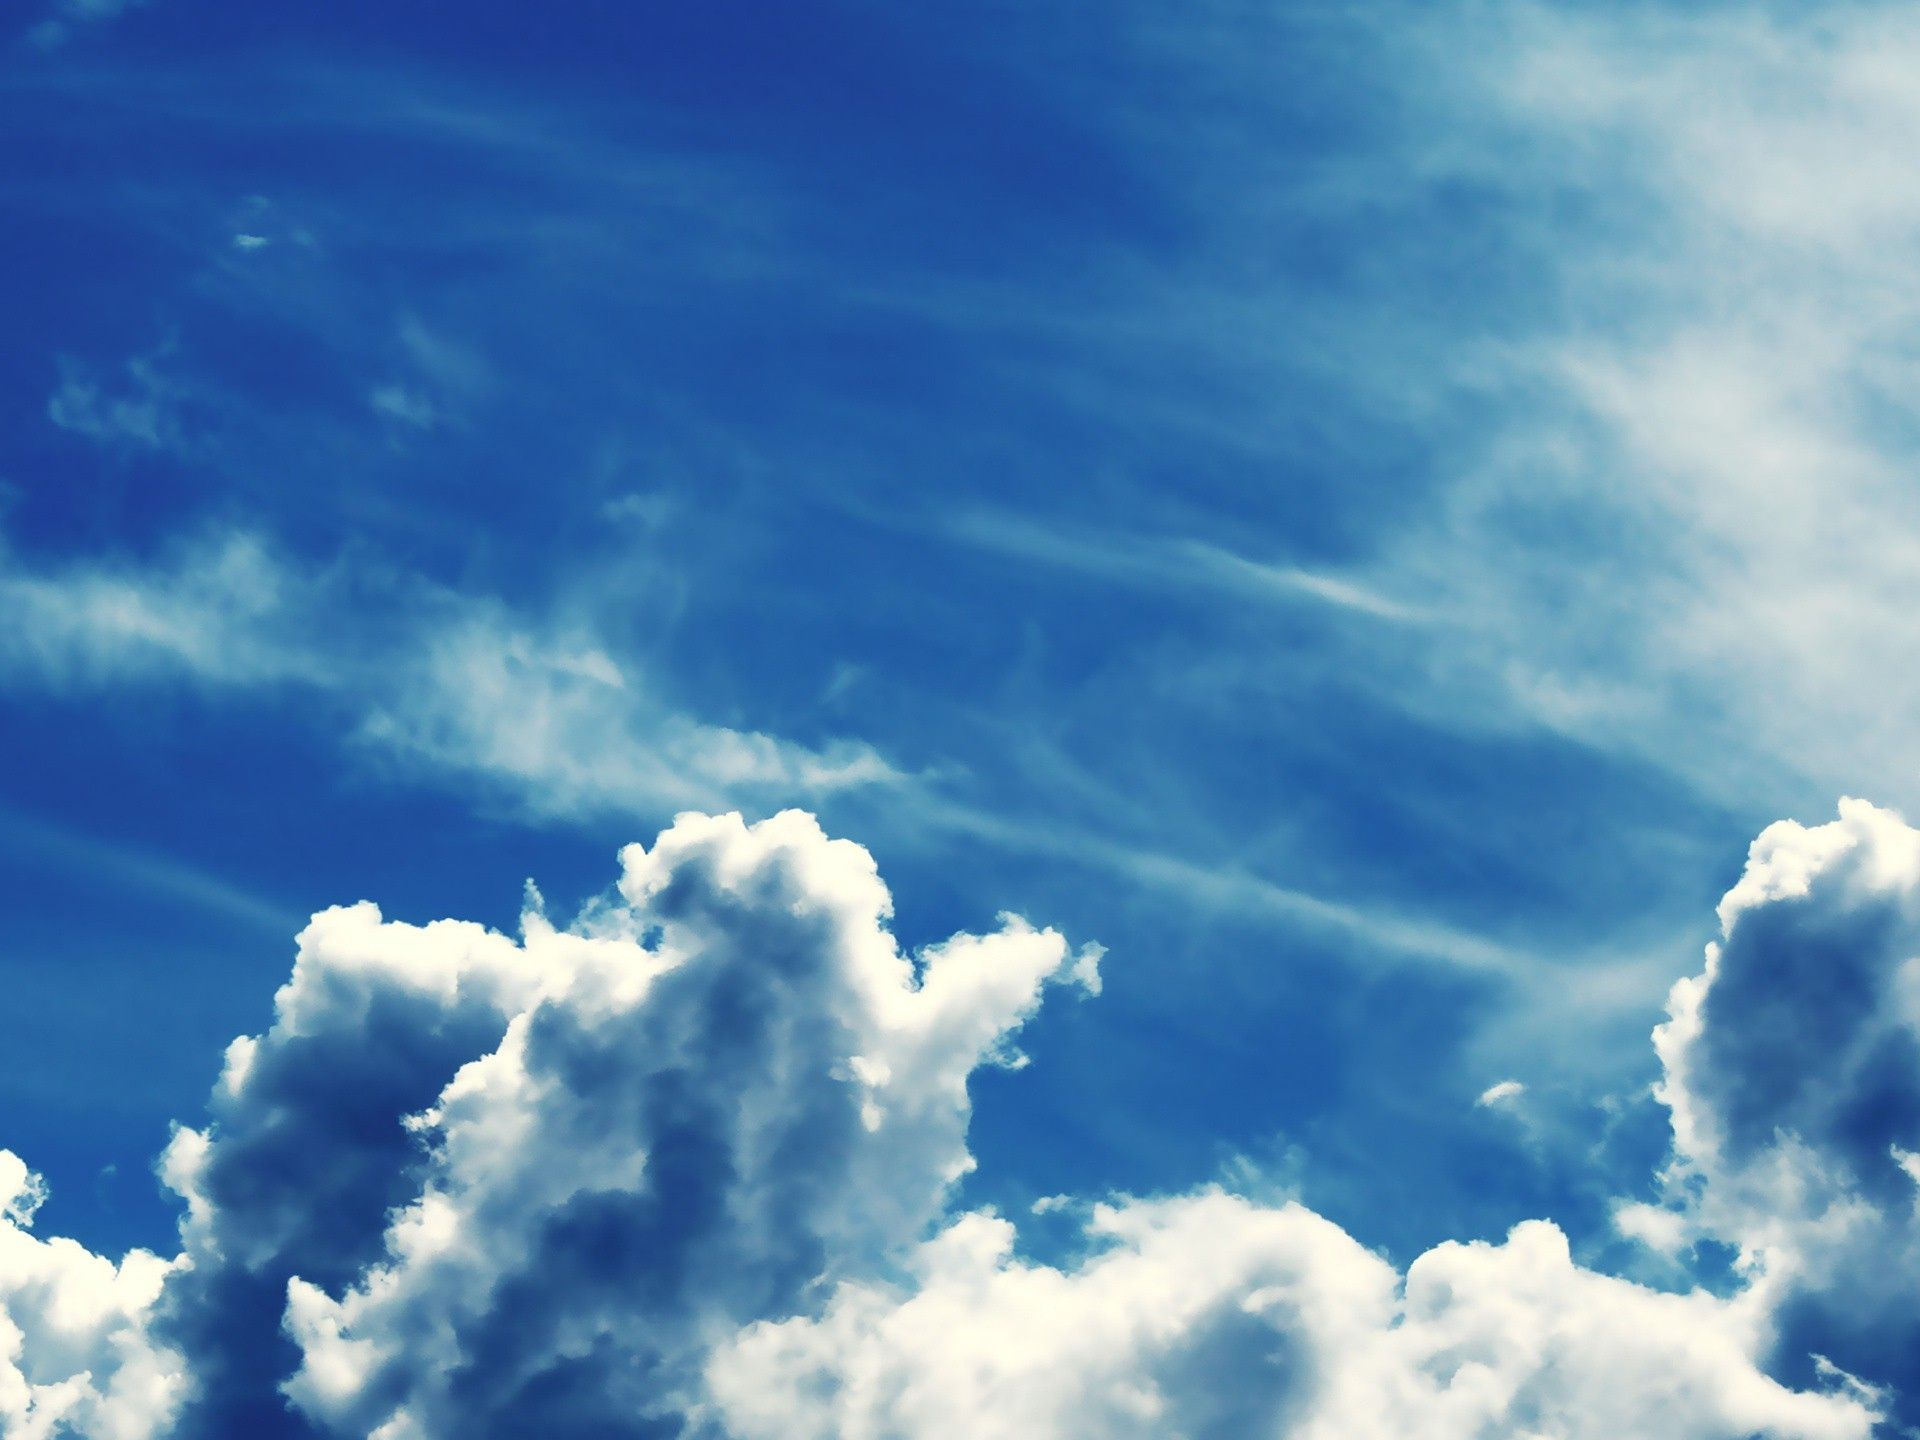 bright blue sky with fluffy clouds wallpaper | 1920x1440 | 5063